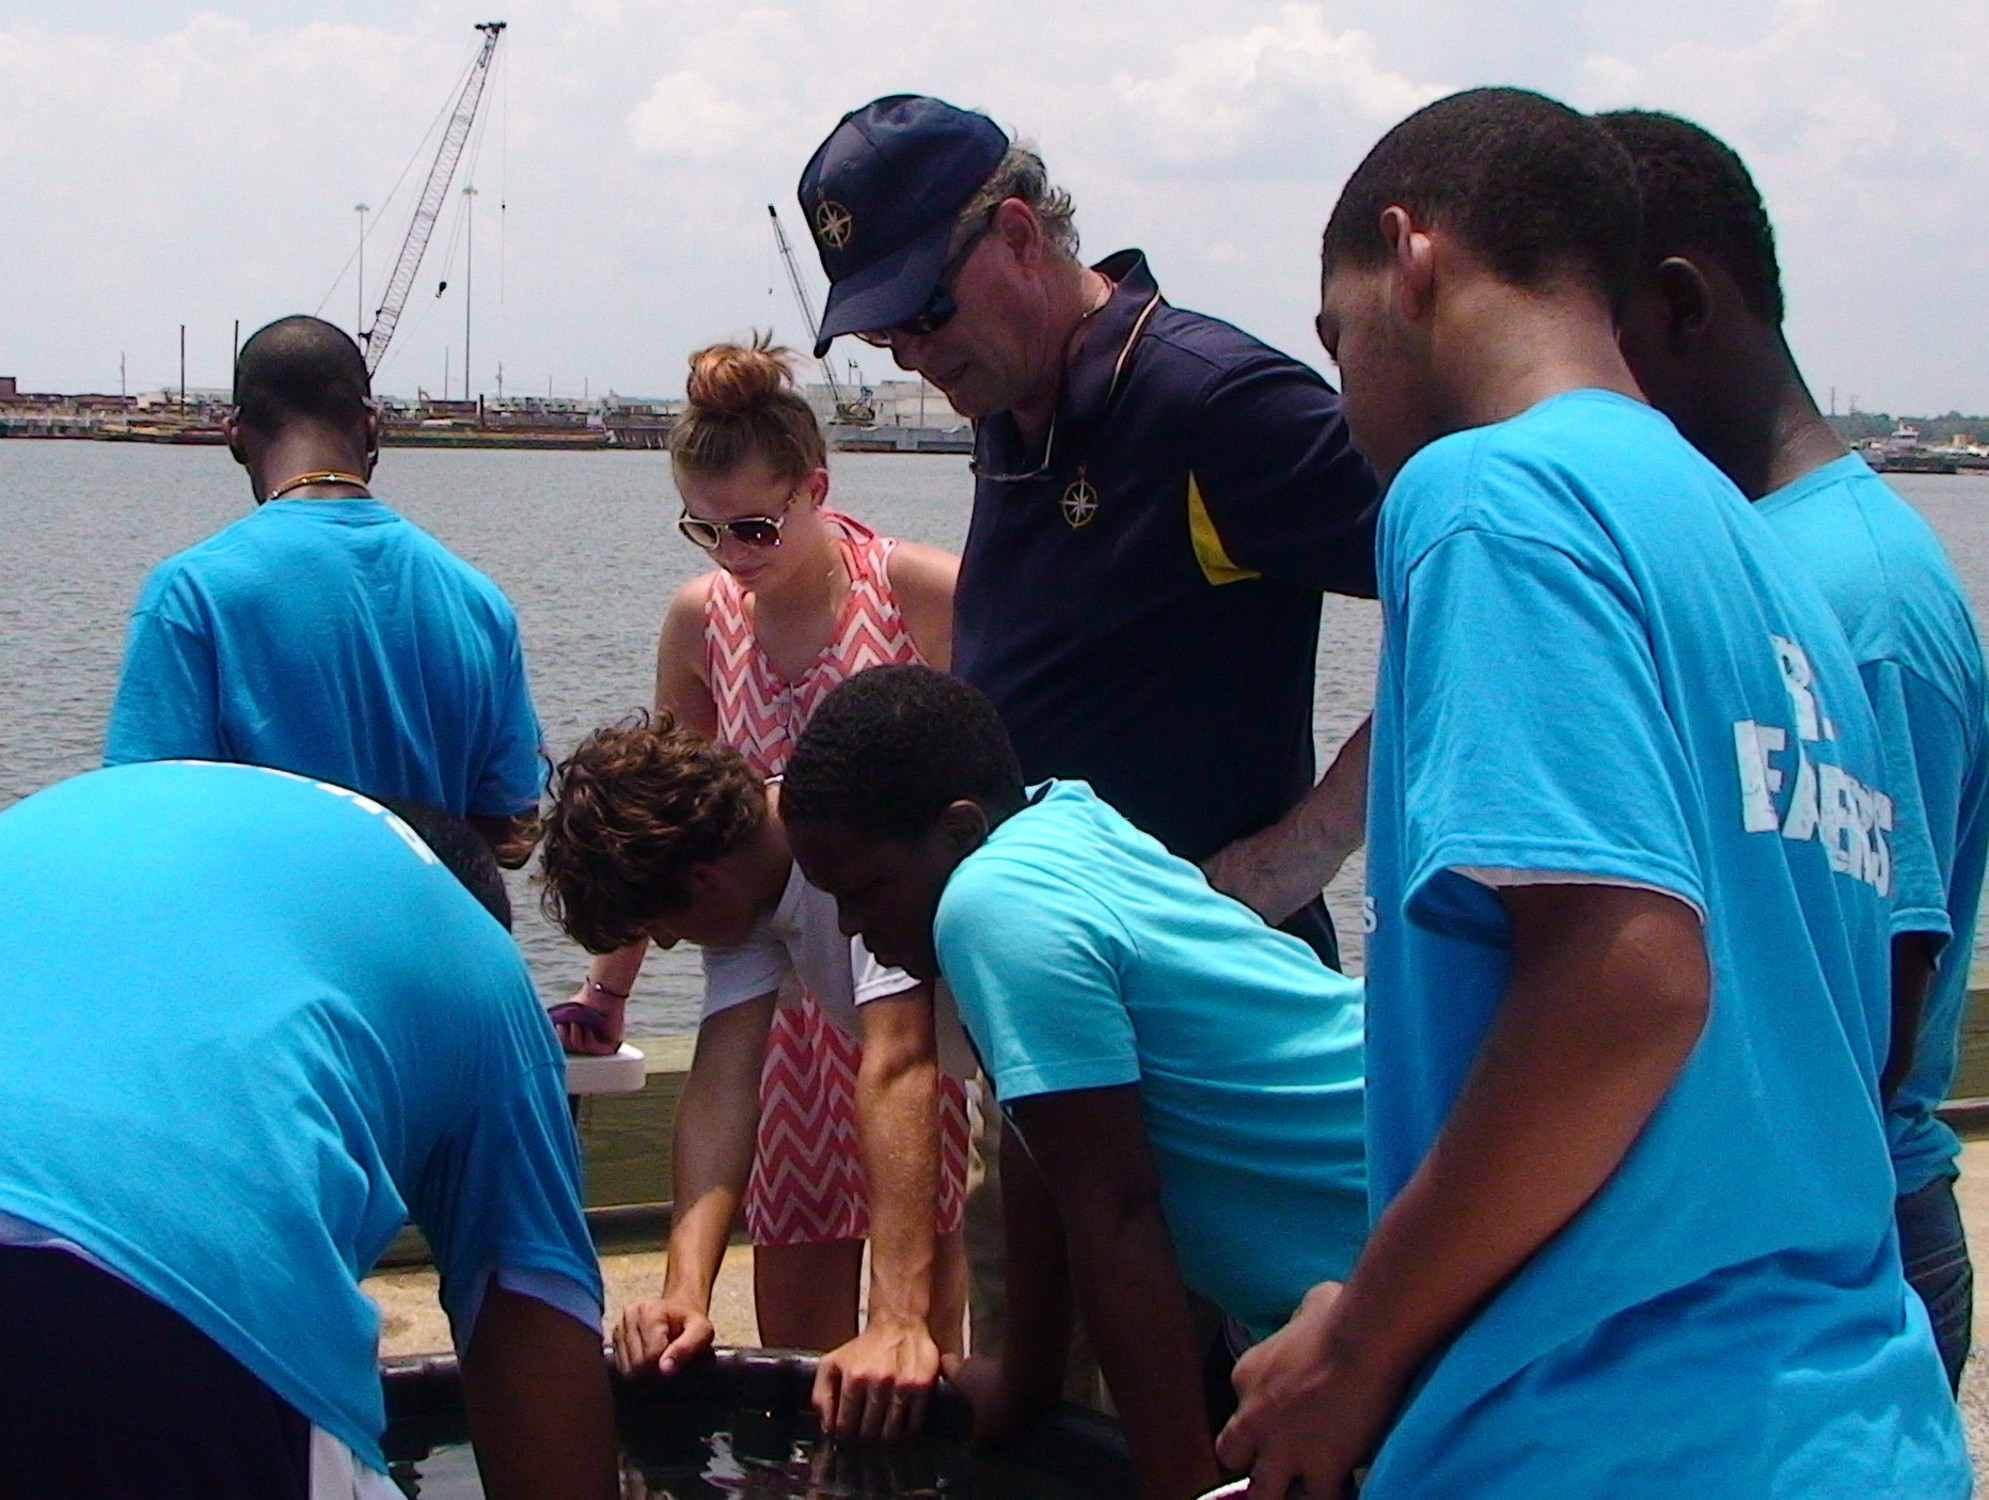 <div style='color:#000000;'><br /><br /><h2>Gulfport, MS Media Day 2014. Dr. Bob Ballard (Nautilus Live and Ocean Exploration Trust) helps teach Boys and Girls club kids about ROVs (remotely operated vehicles). </h2>Photo courtesy of Gary Finch Productions</div>